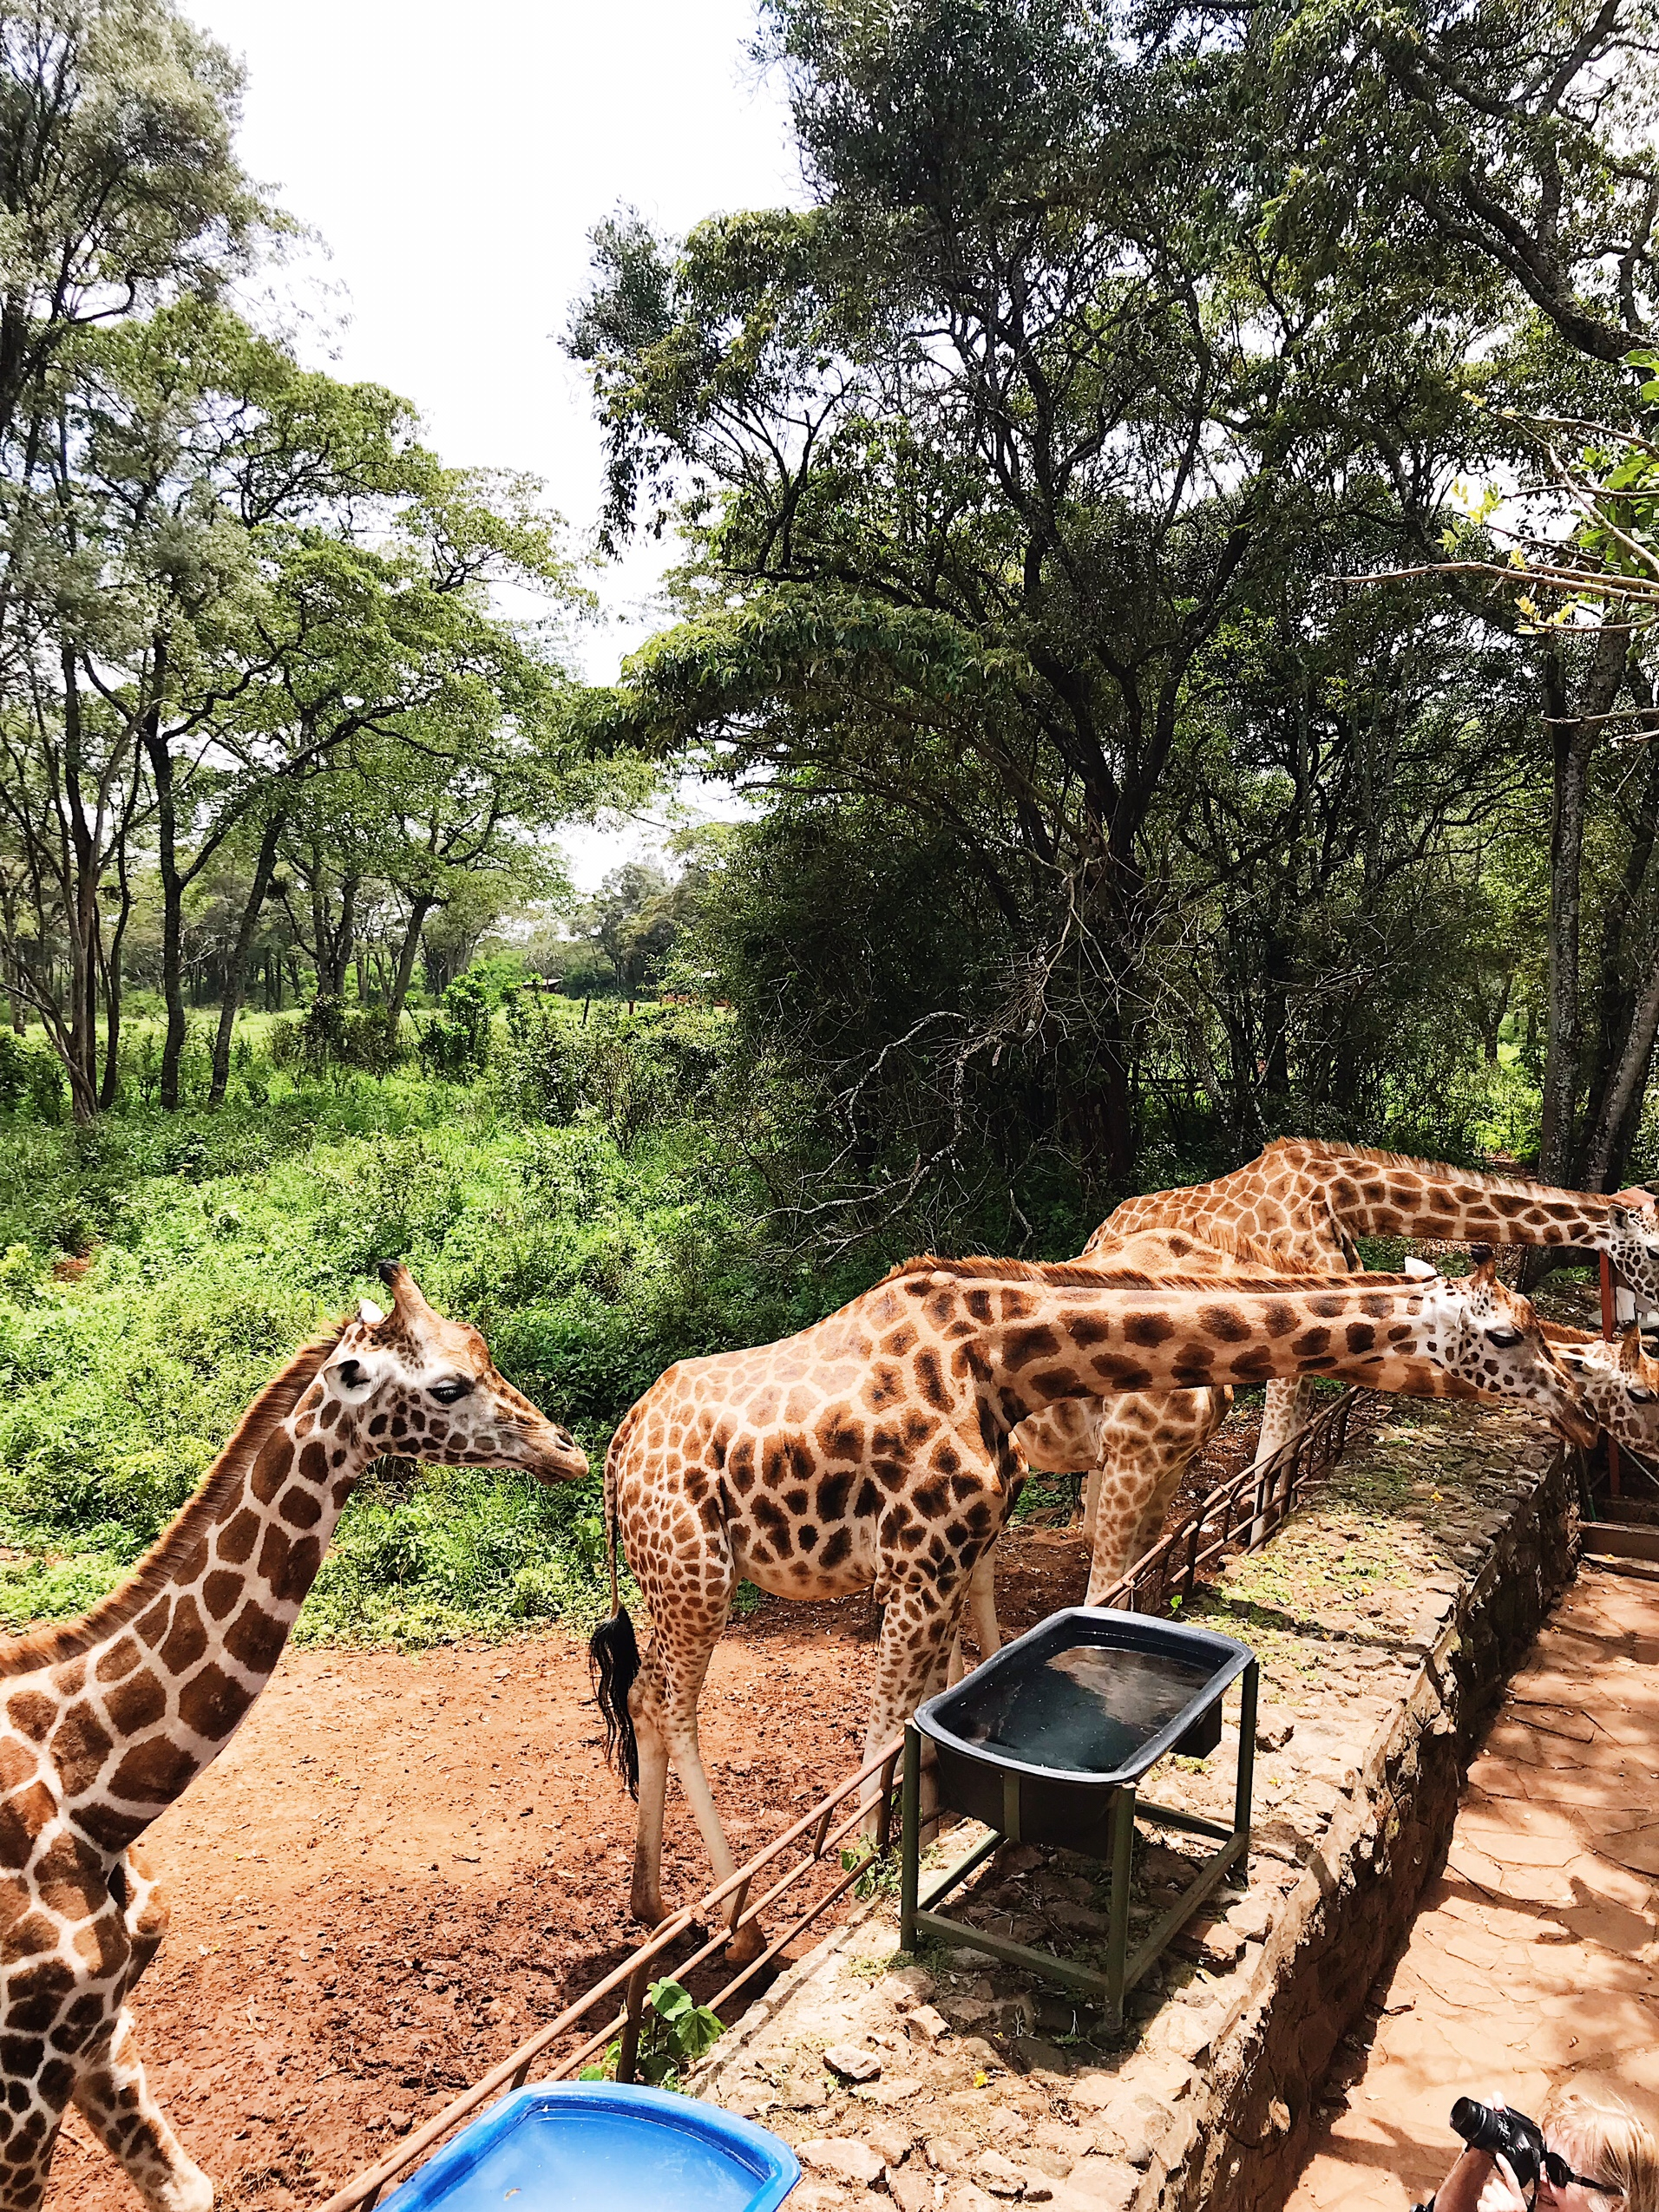 Image of giraffe centre in Nairobi